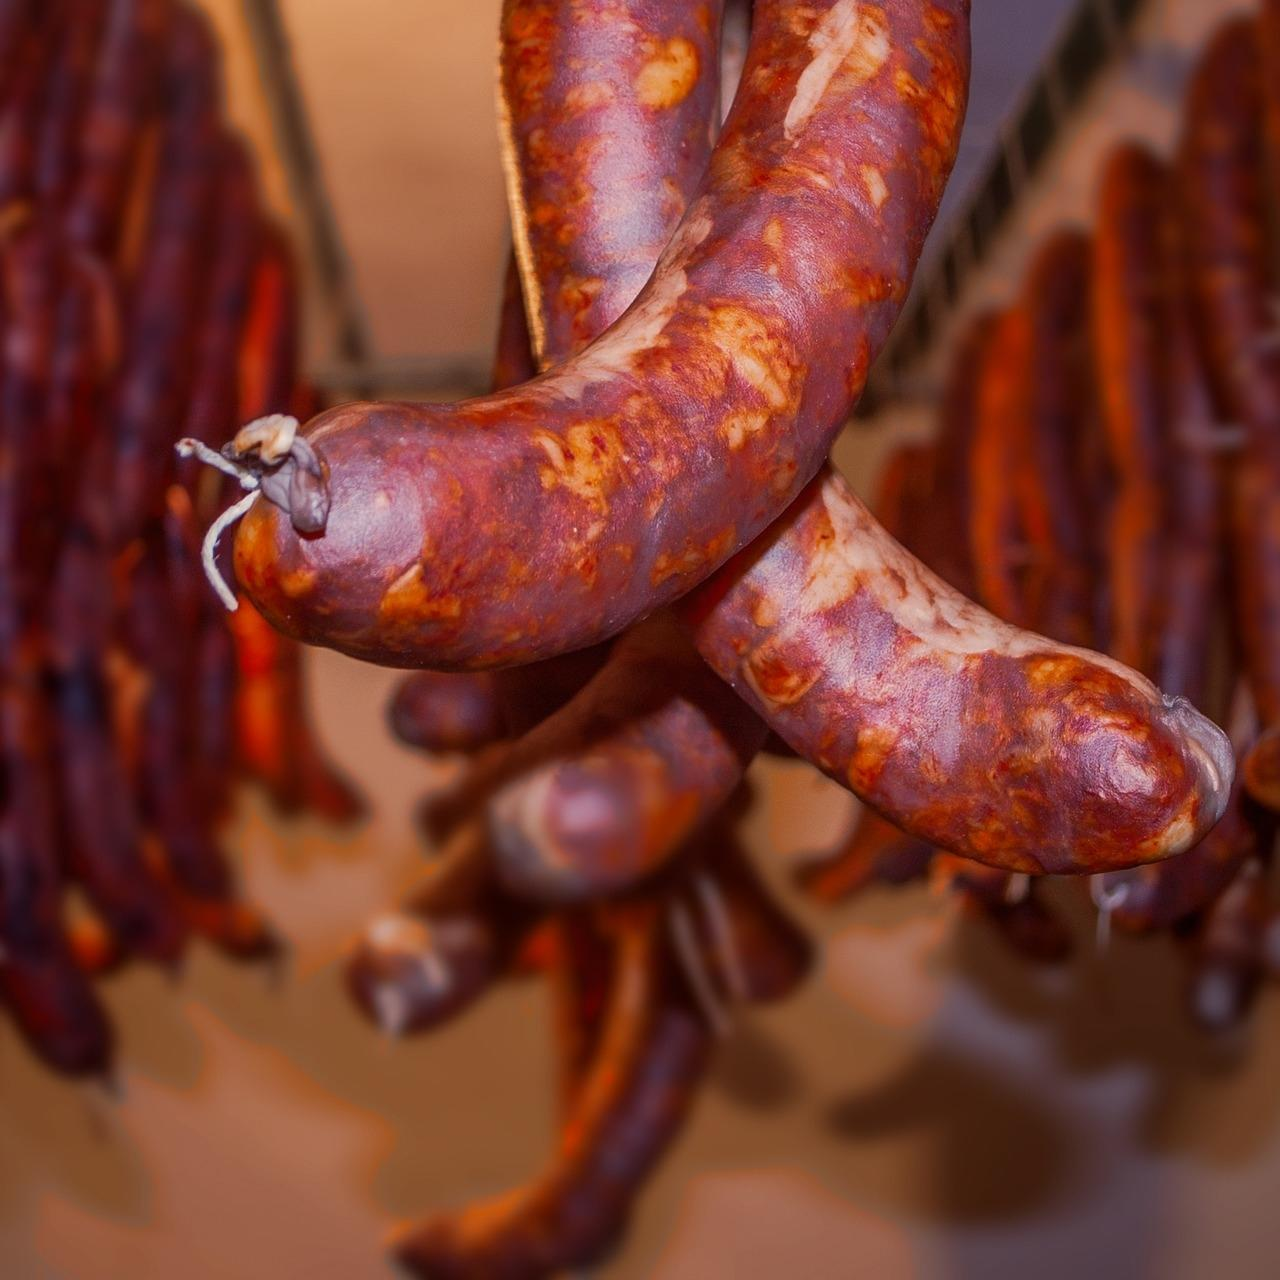 Chorizo hanging to cure